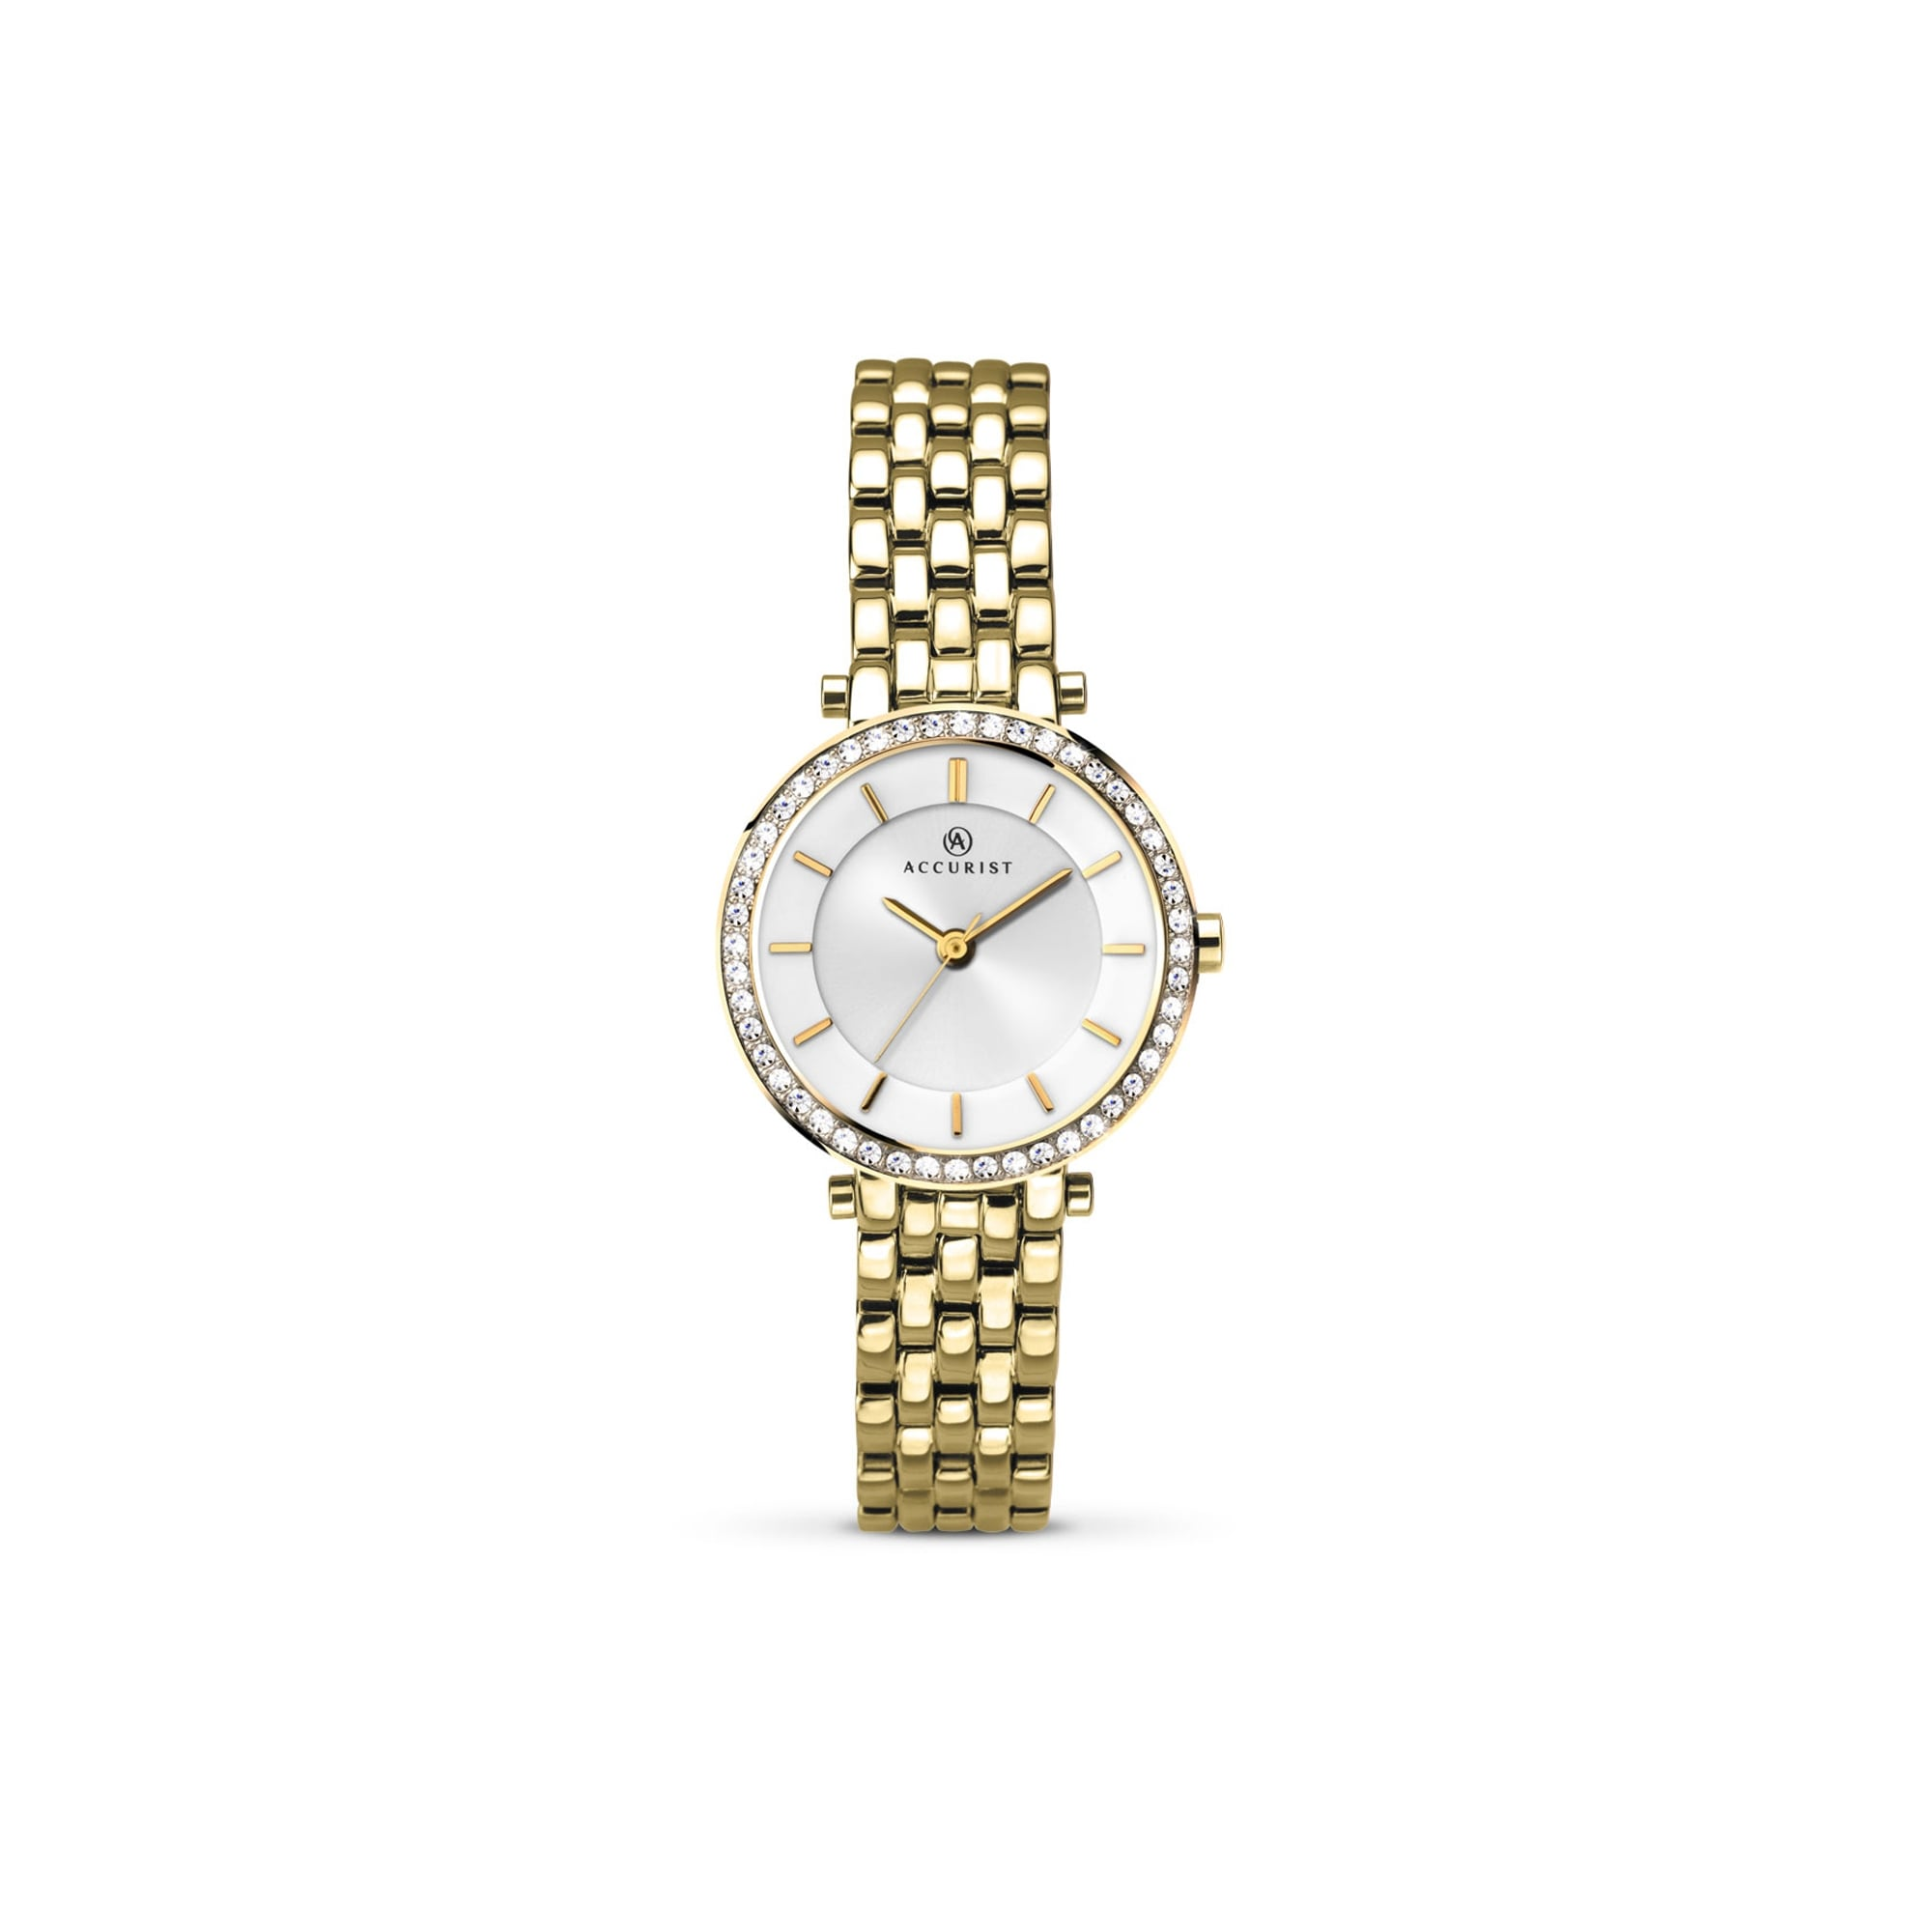 Accurist Watches Womens Accurist Gold Plated Watch With Swarovski ... aab6fb63b96f